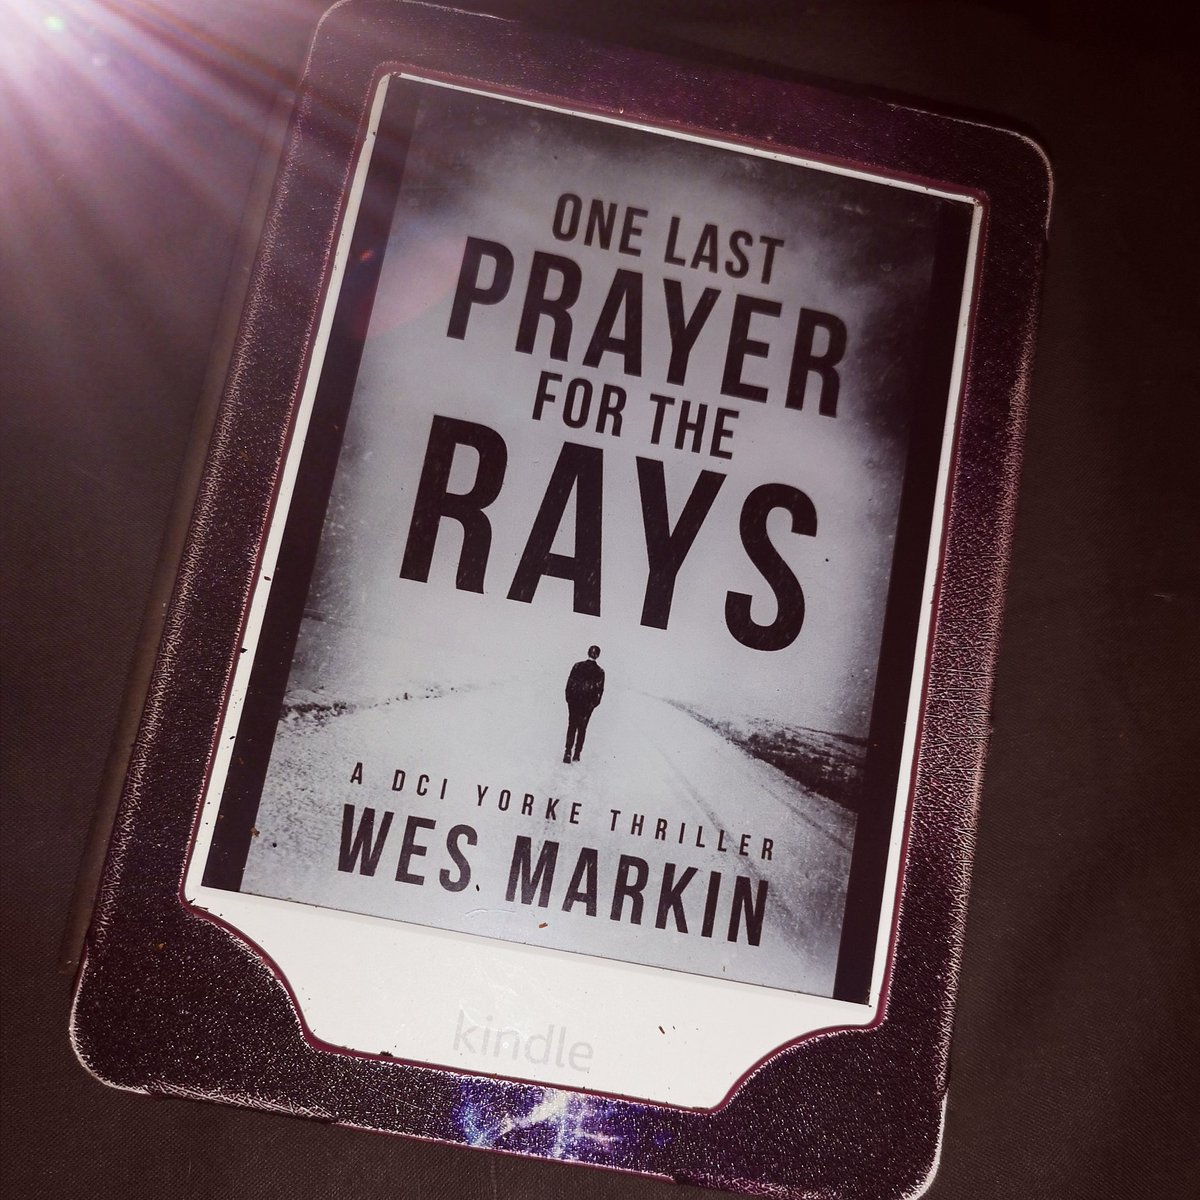 Currently Starting to read this  One Last Prayer for the Rays by Wes Markin. Been looking forward to starting this series. #thriller #bookblogger #currentlyreading #wesmarkin #books #kindle #allnewkindle #bookblogging #booklovepic.twitter.com/t4fJhpPqr8